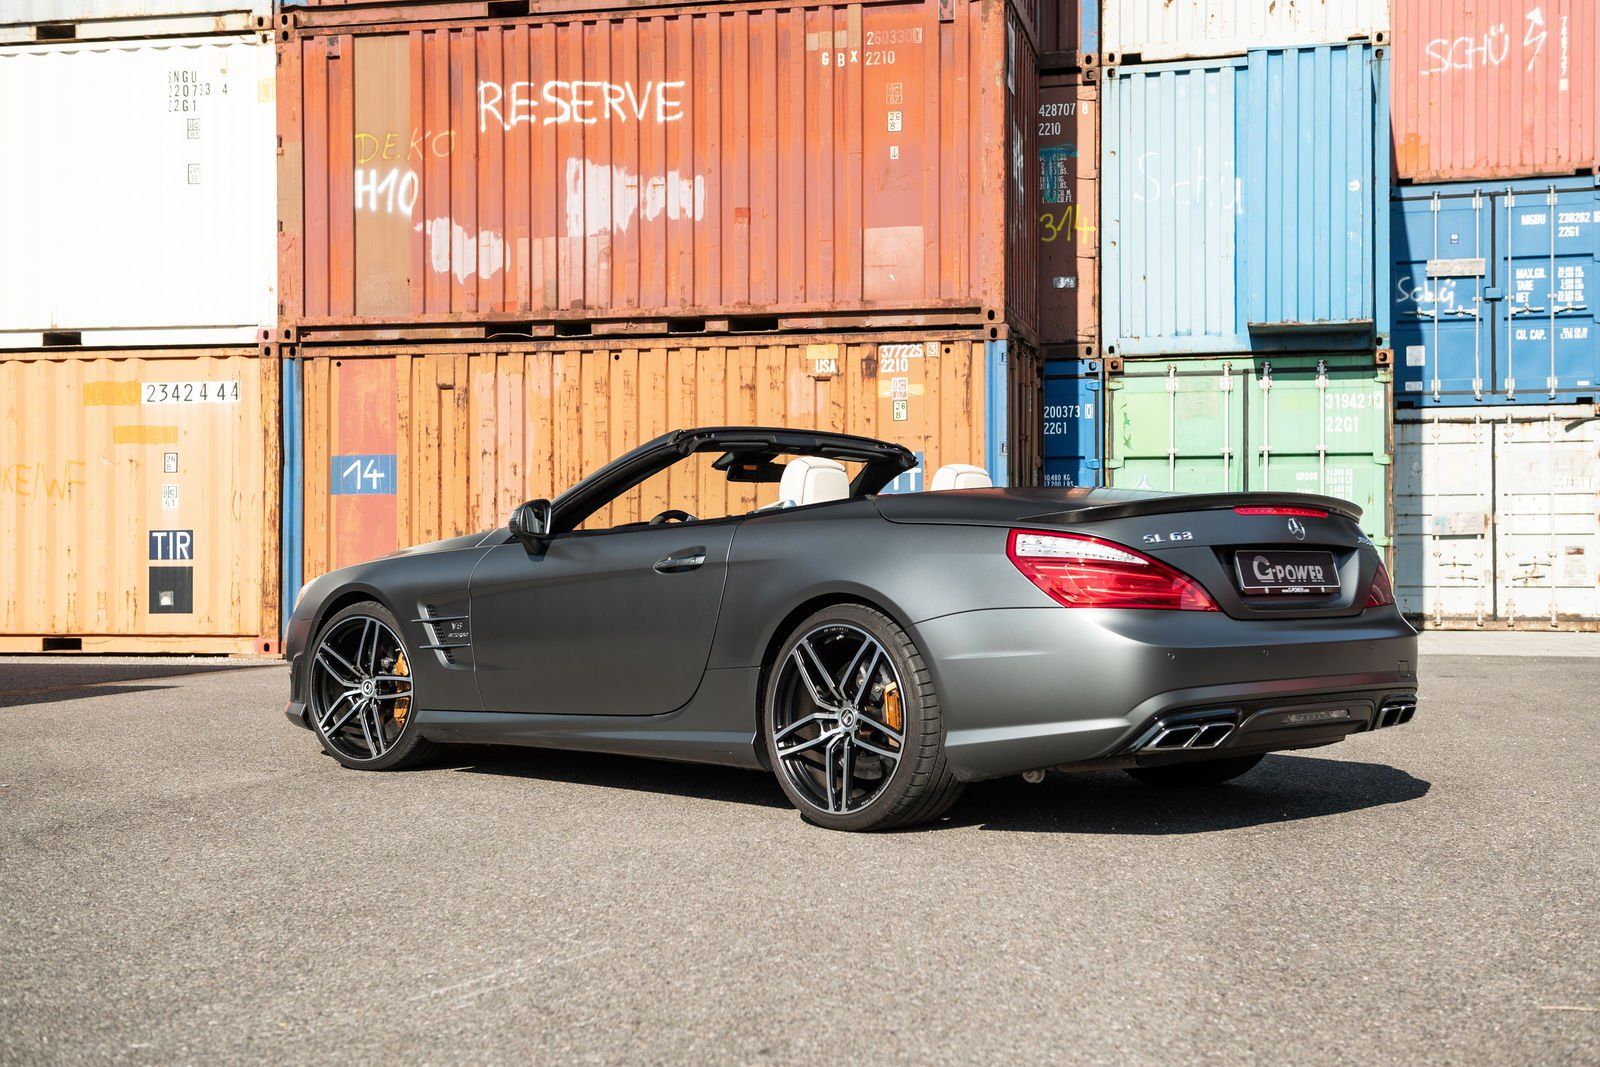 Mercedes Amg Sl63 Tuning G Power (2)